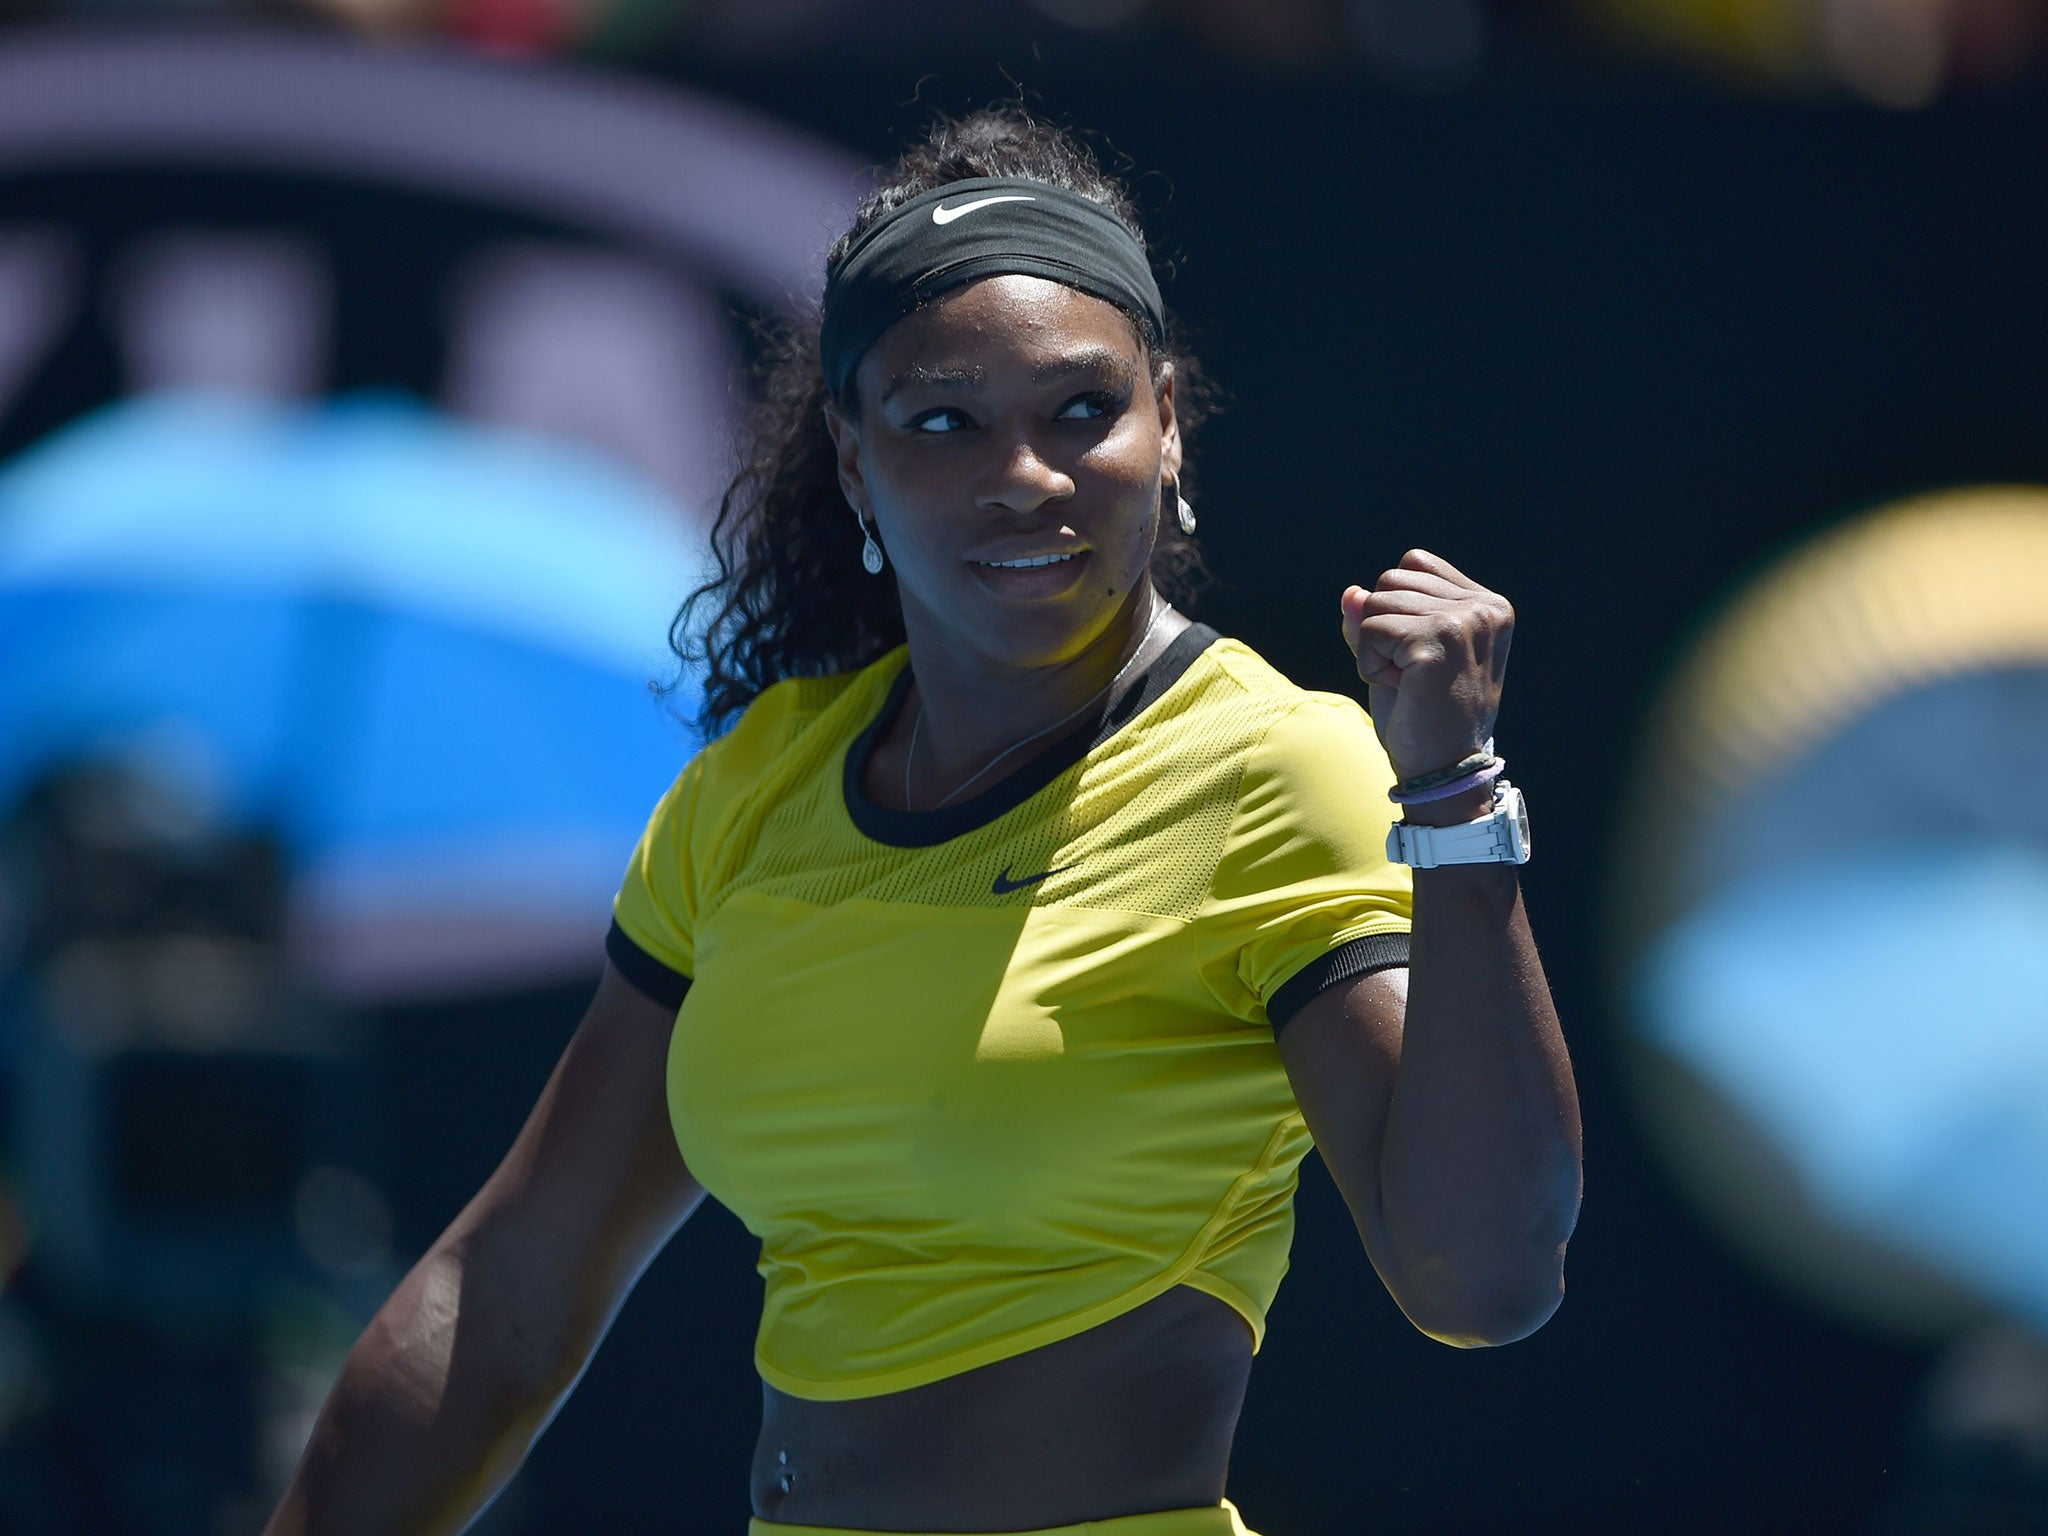 Serena Williams returns to clay in style to once again take up